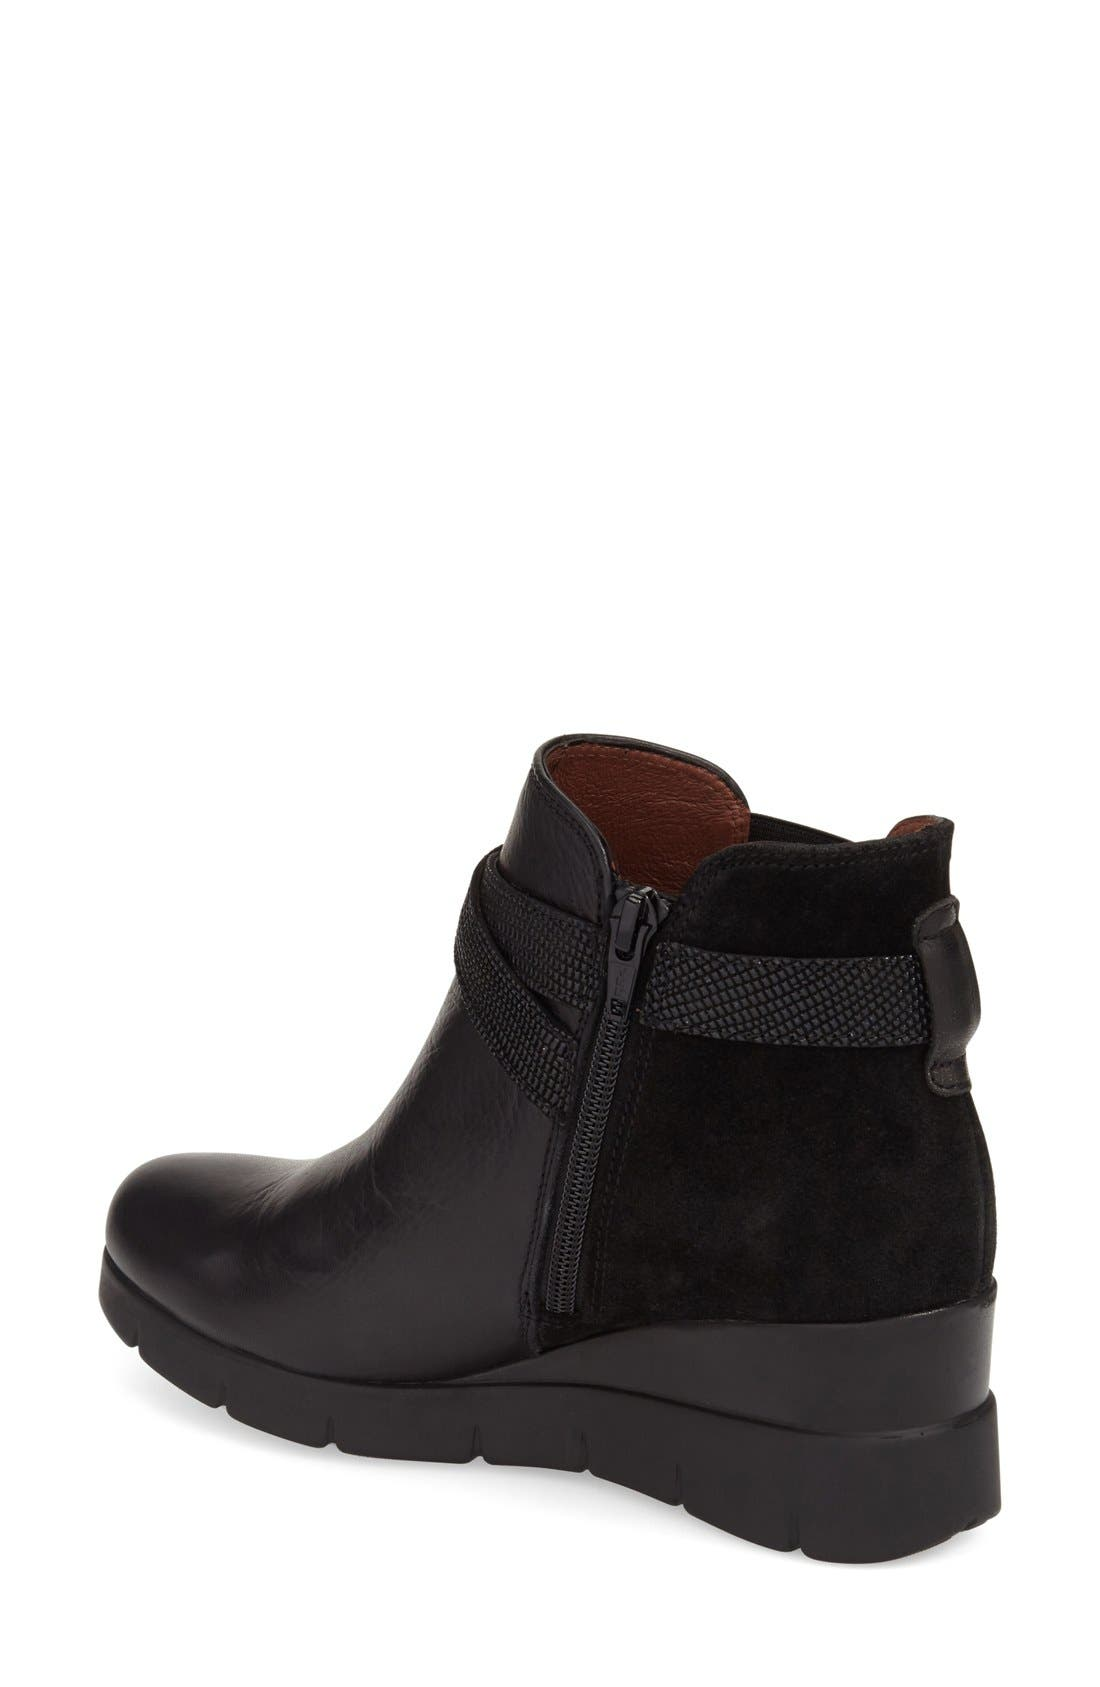 'Larae' Wedge Bootie,                             Alternate thumbnail 2, color,                             SOHO BLACK LEATHER